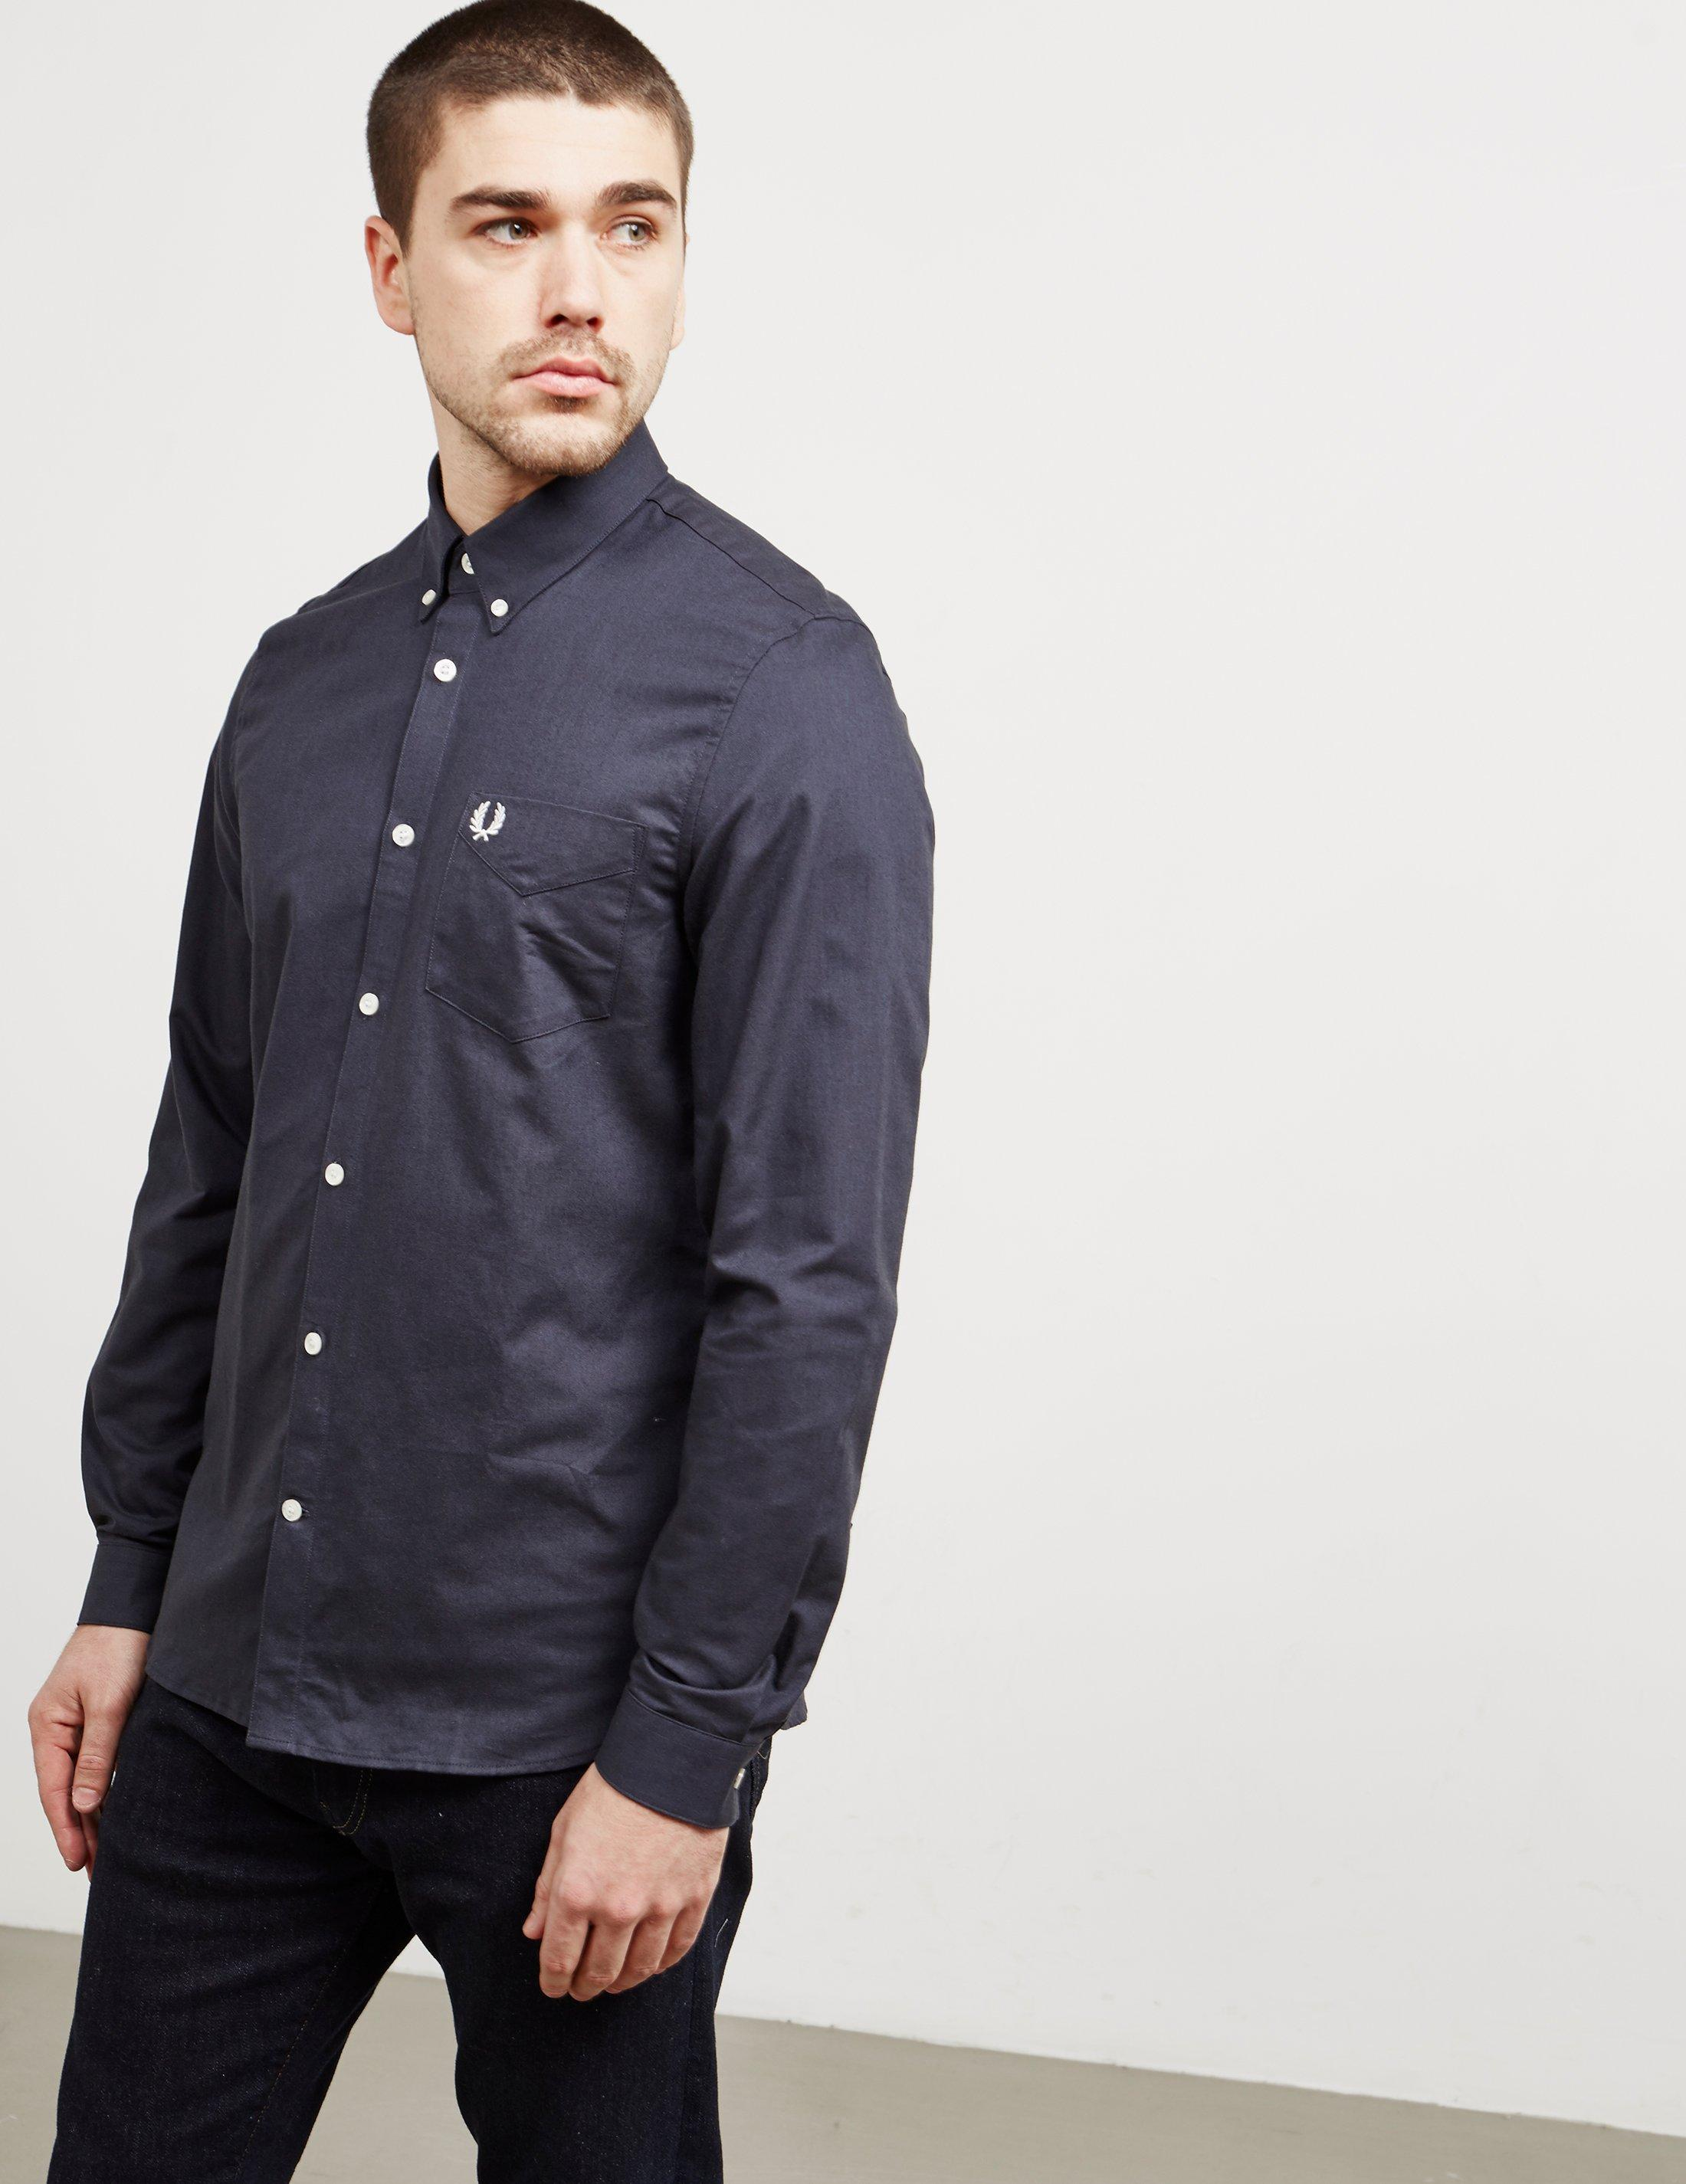 a3a1acba Fred Perry Mens Oxford Long Sleeve Shirt Black in Black for Men - Lyst